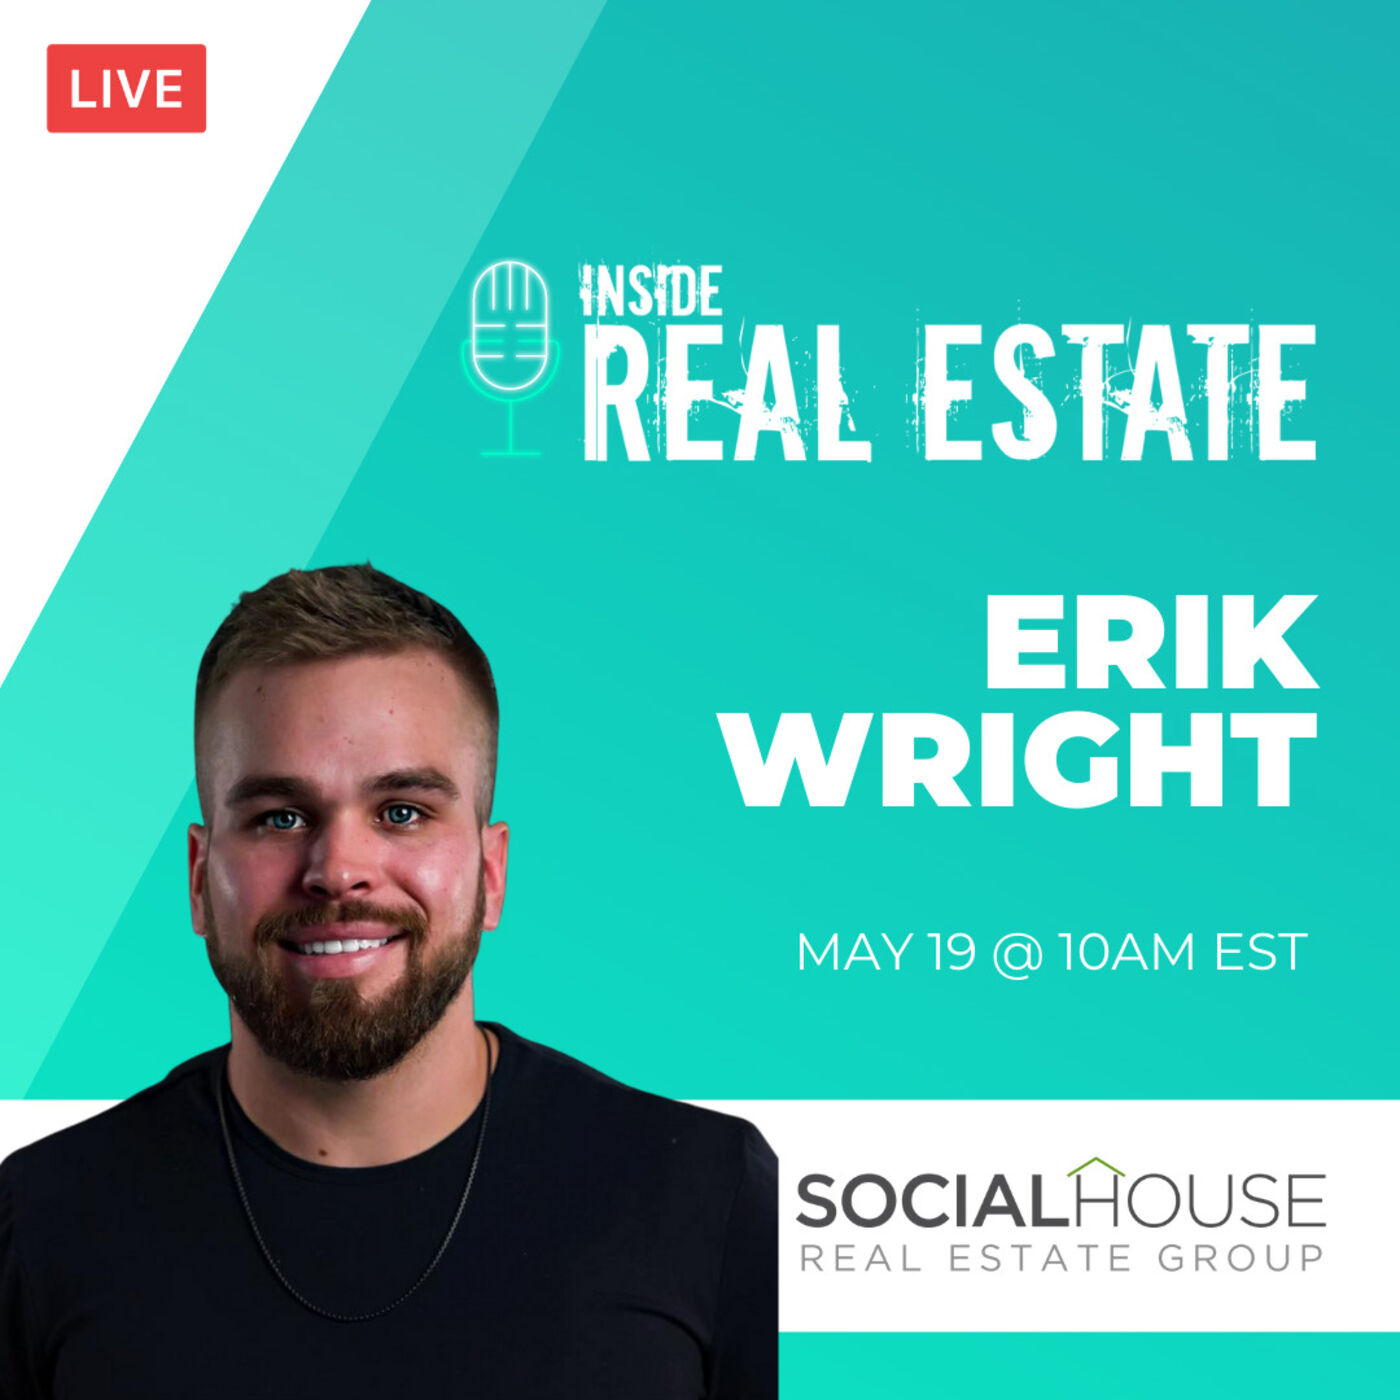 Erik Wright, Social House Group - Social Media, New Construction Pullback, Forbearance and More